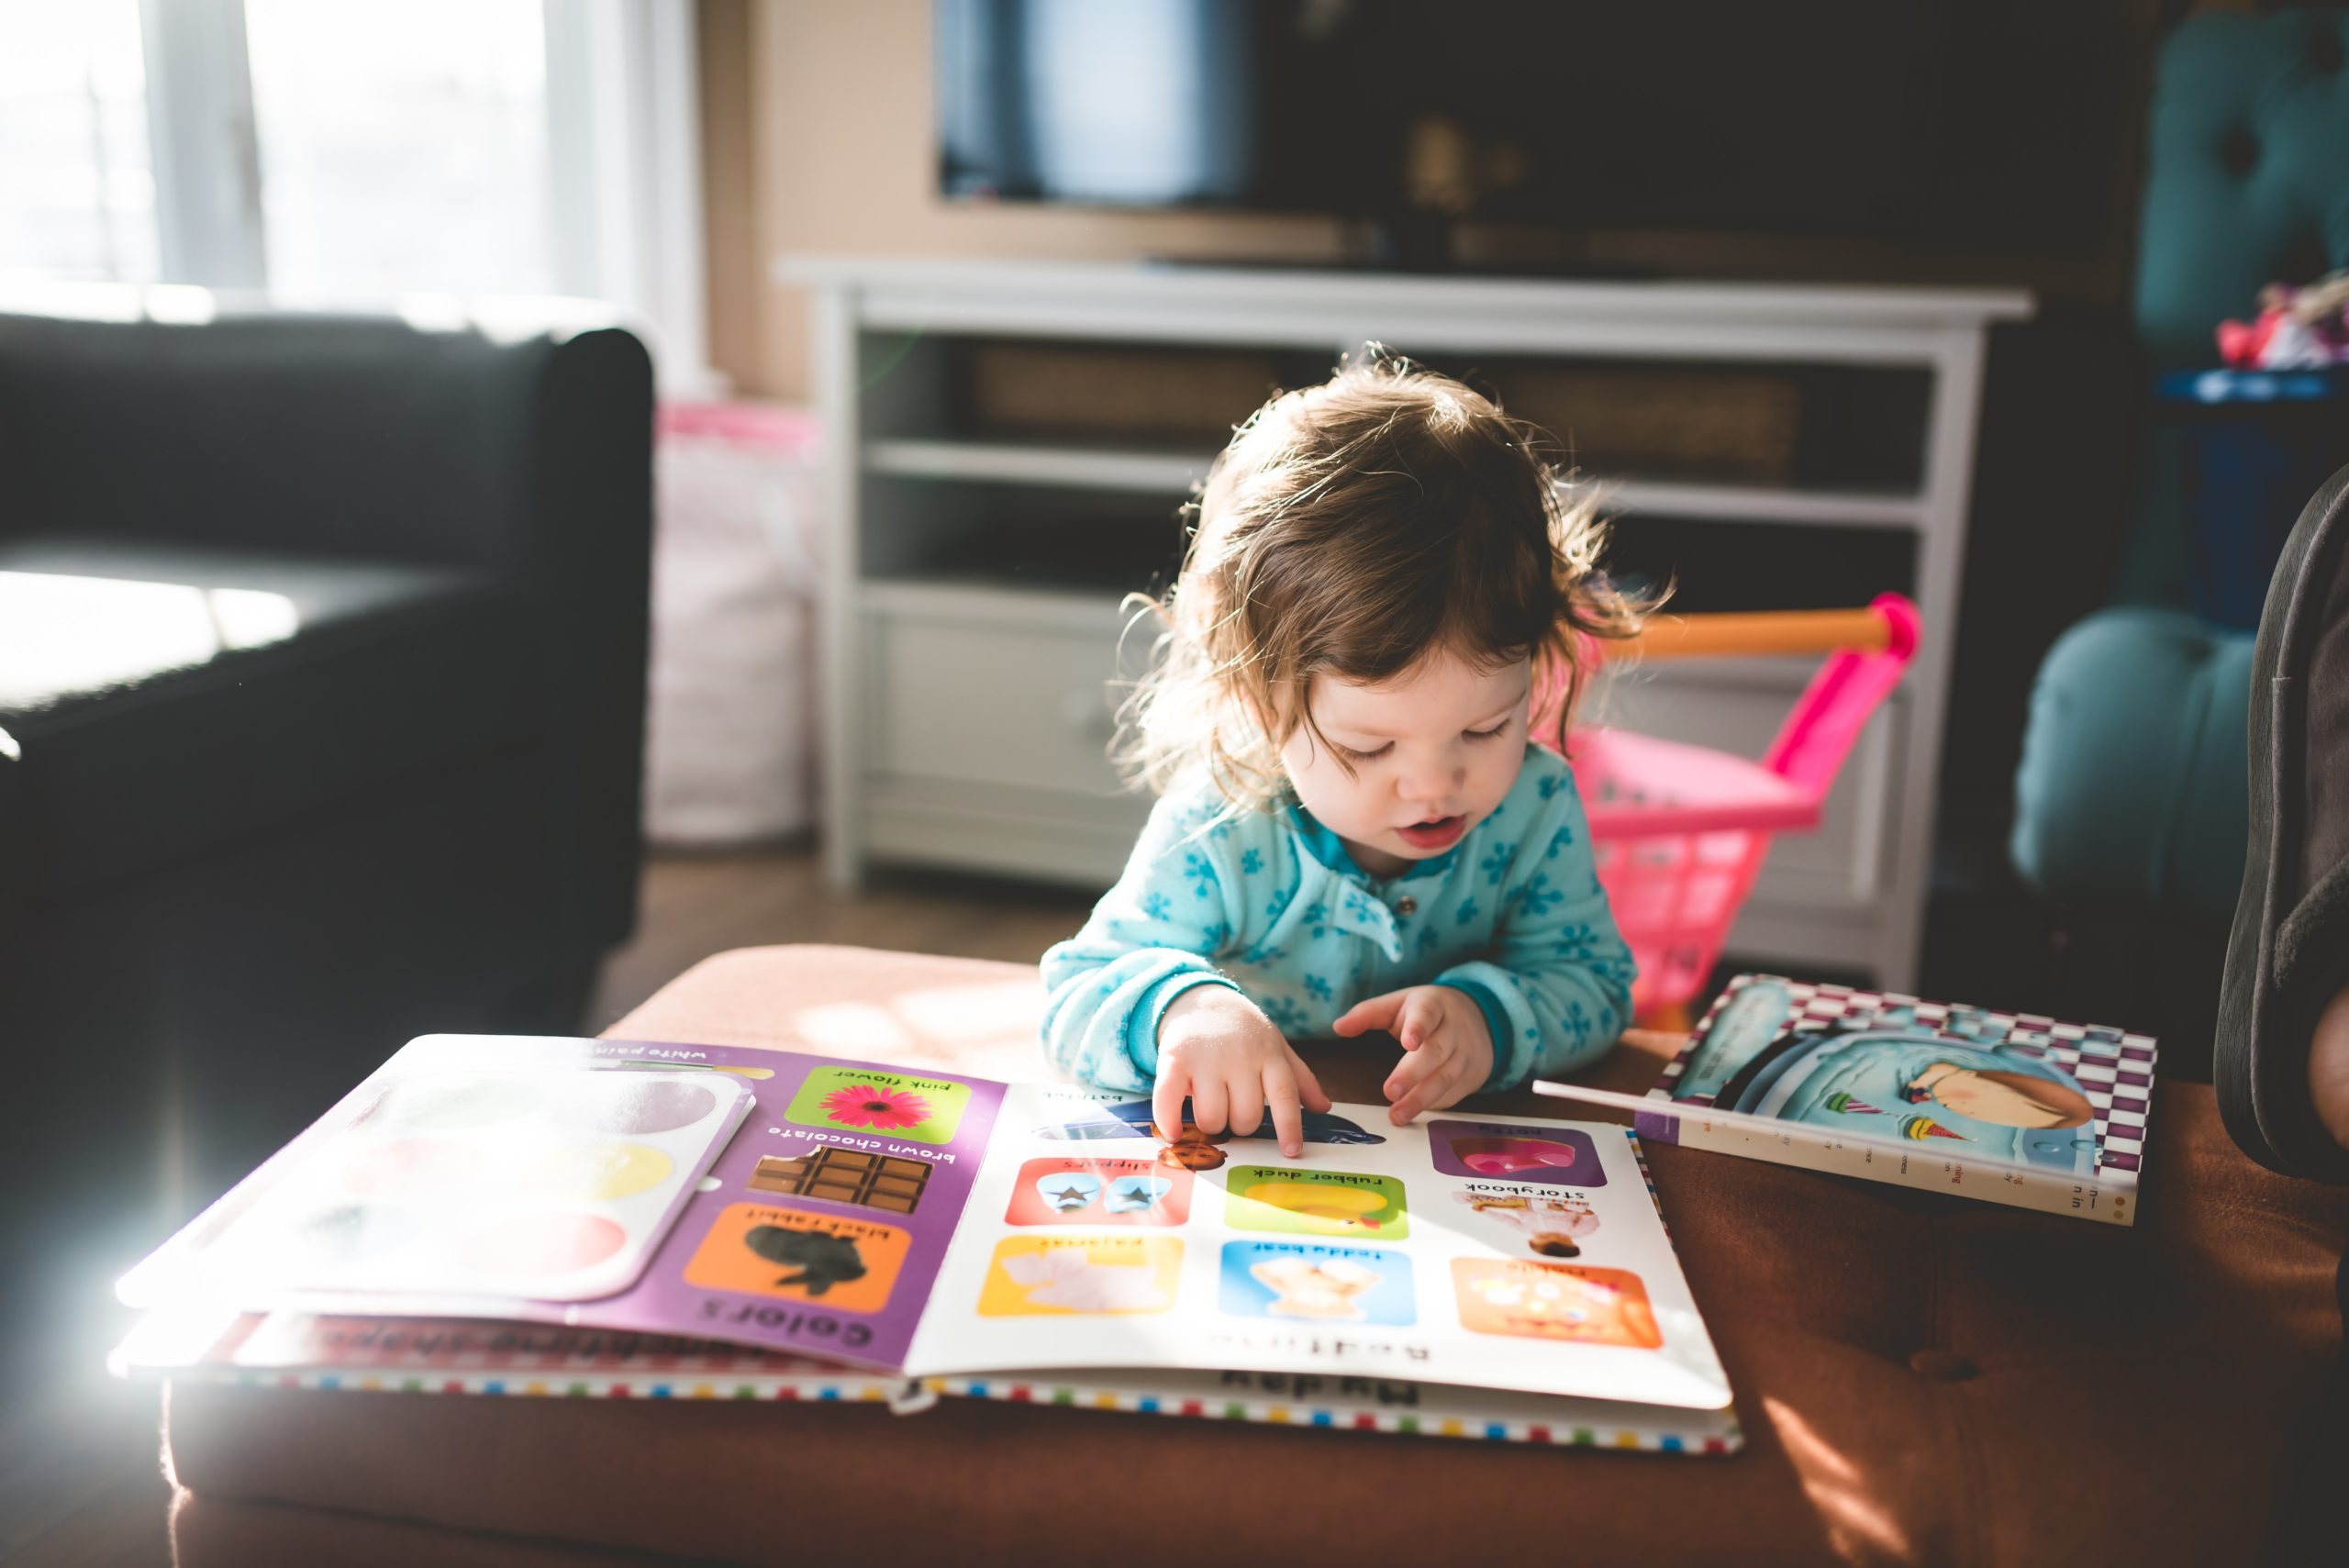 A child in a blue one piece is reading from a colourful picture book.